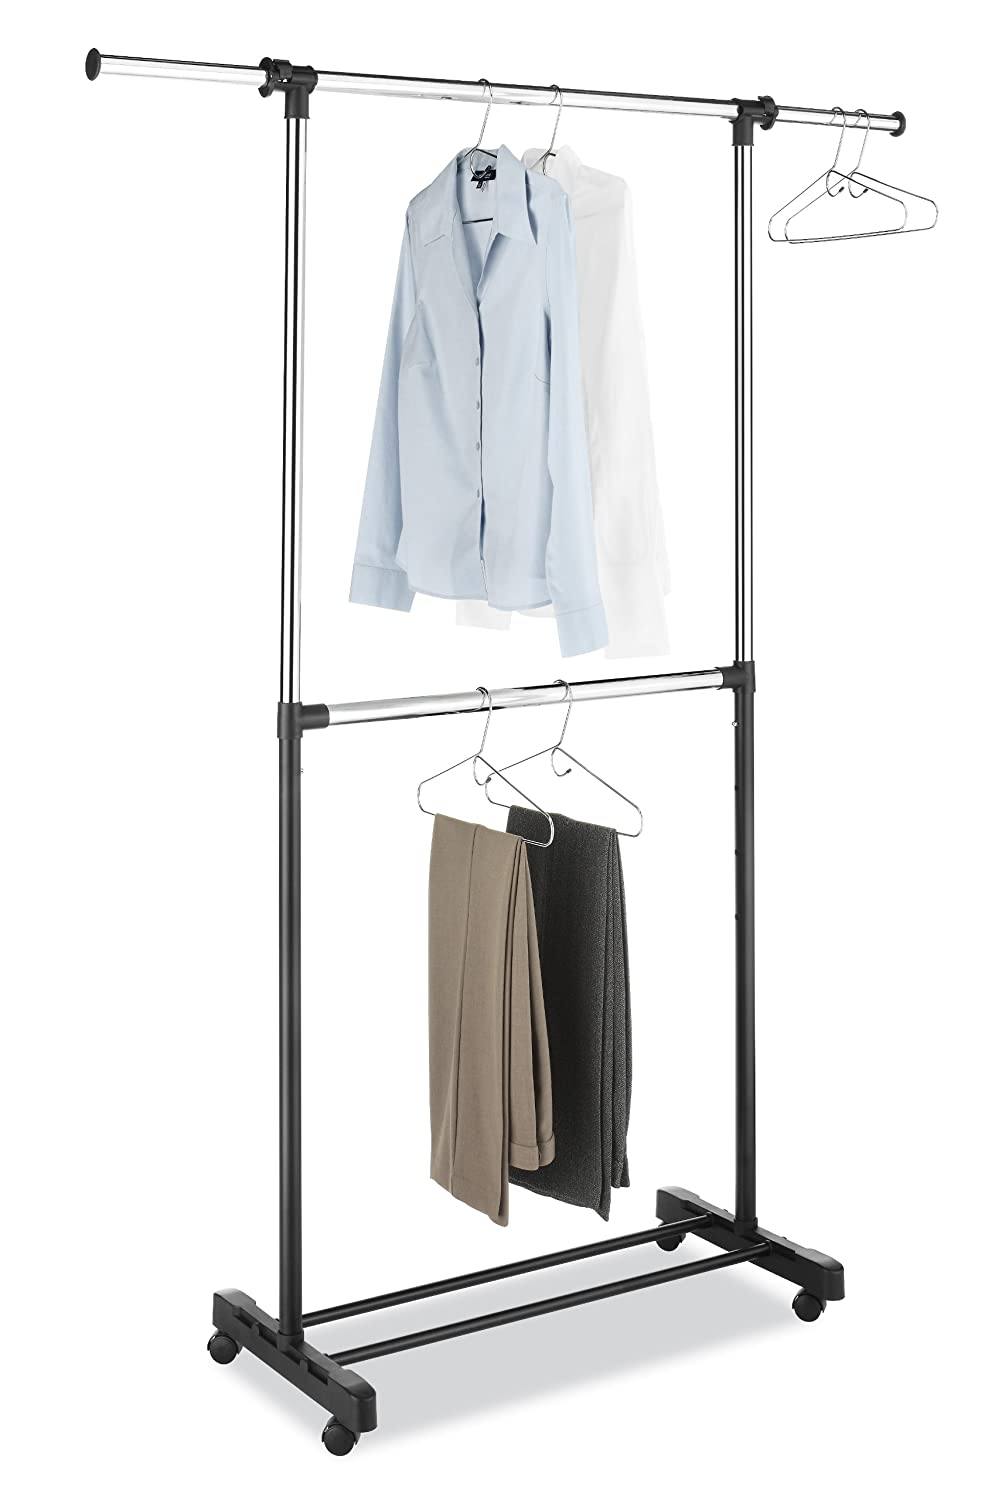 Whitmor Adjustable Two Garment Rod Rack Clothes Stand ...